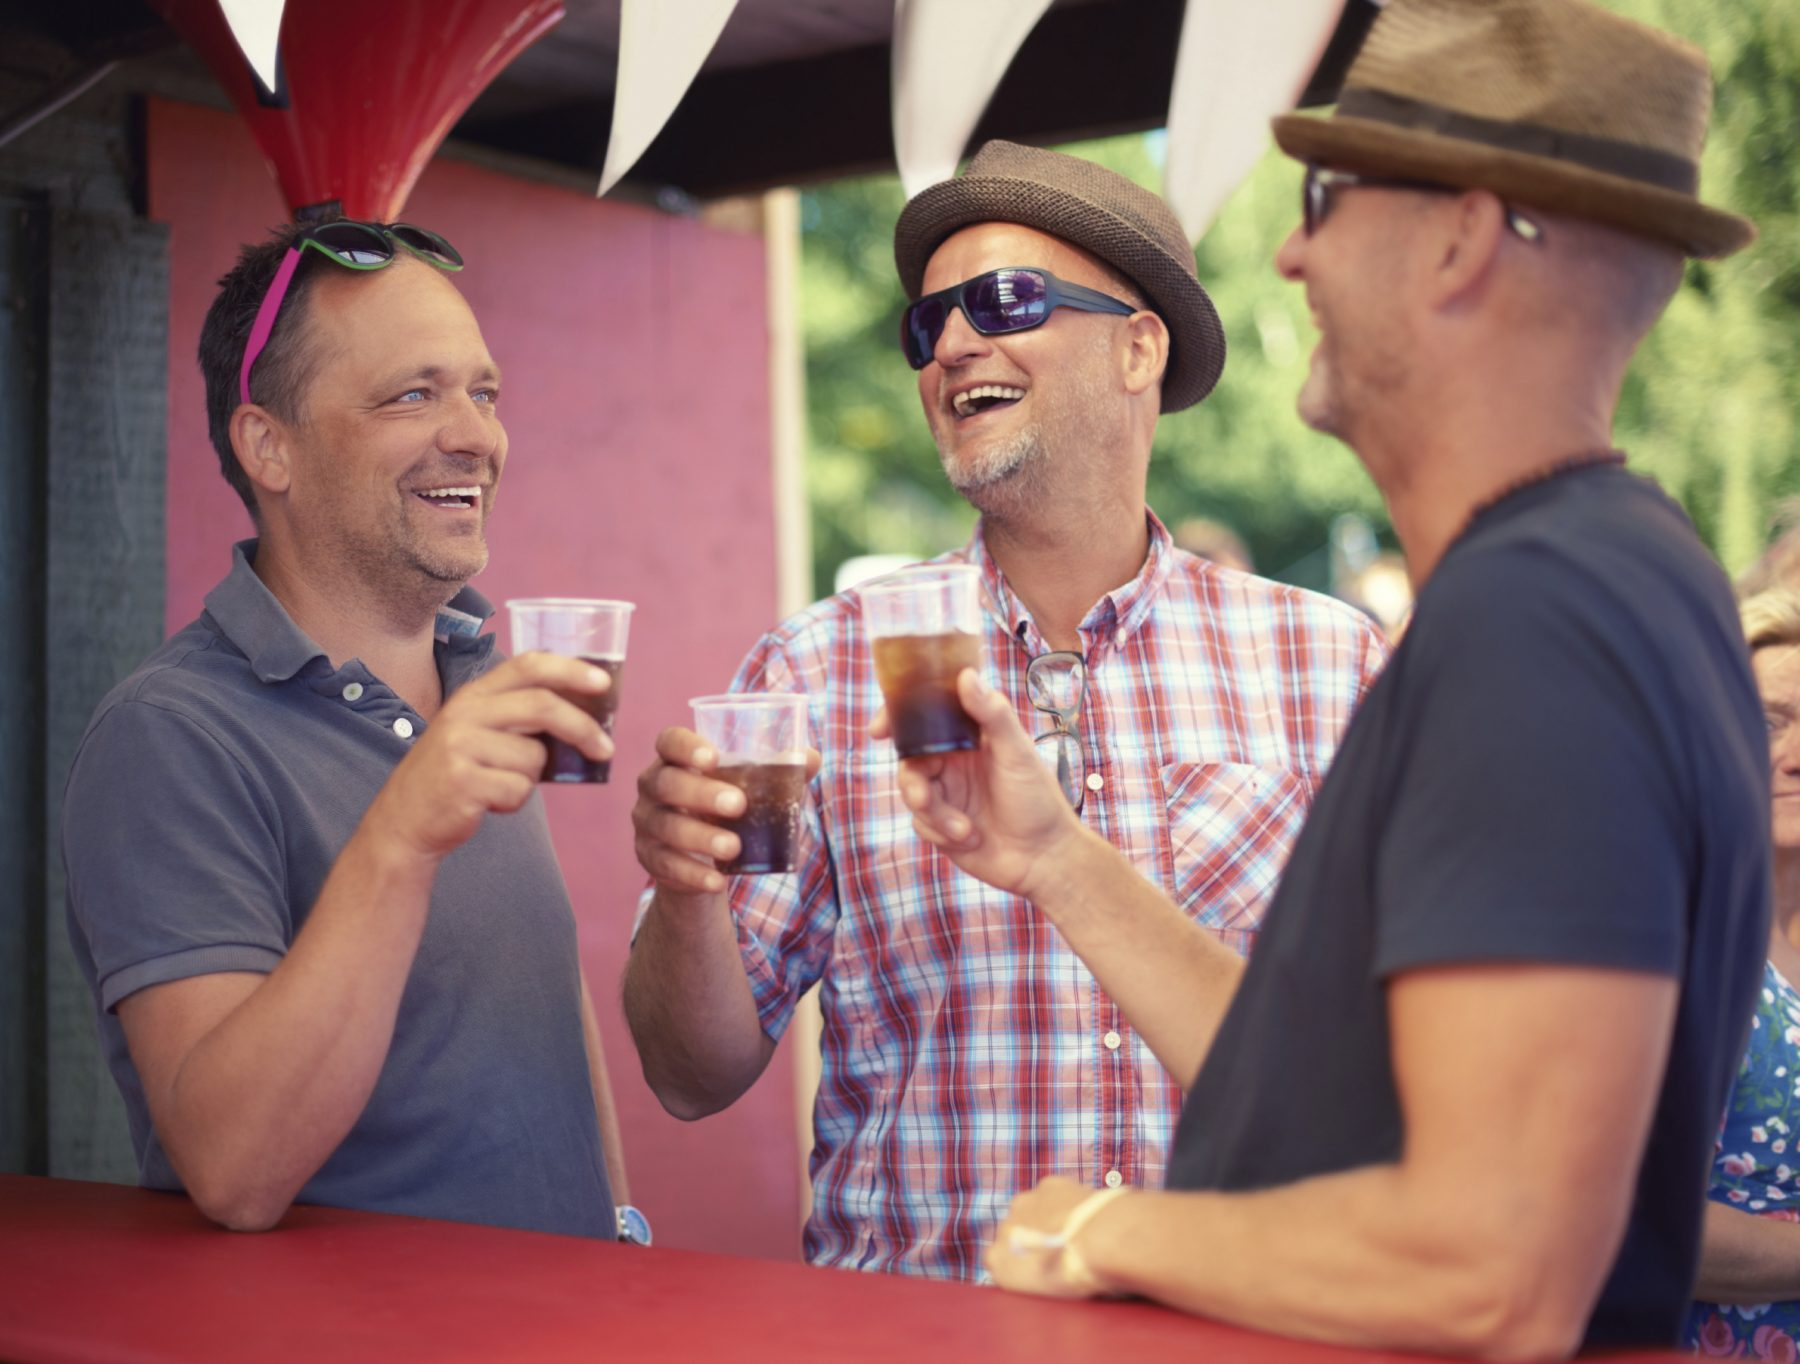 Alcohol & HIV: What You Need to Know